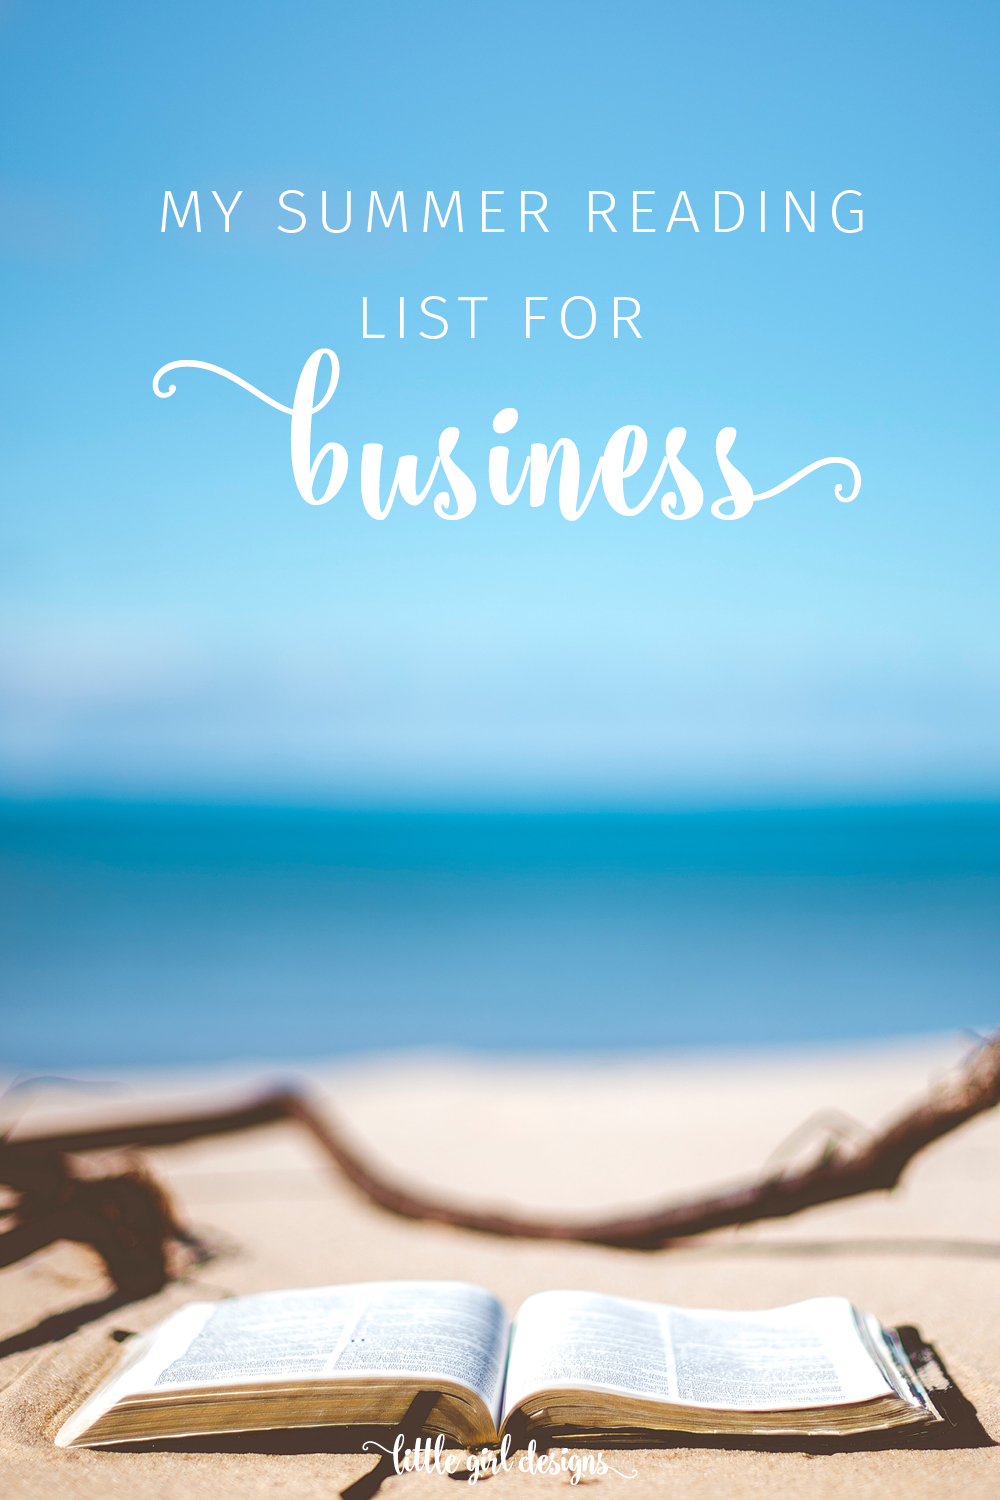 What a great list of books for your business! I need to read these as I want to grow my blog and online business this year. I especially appreciate that this summer reading list is not niche-specific and is more leadership and wealth-building based. Great resource!